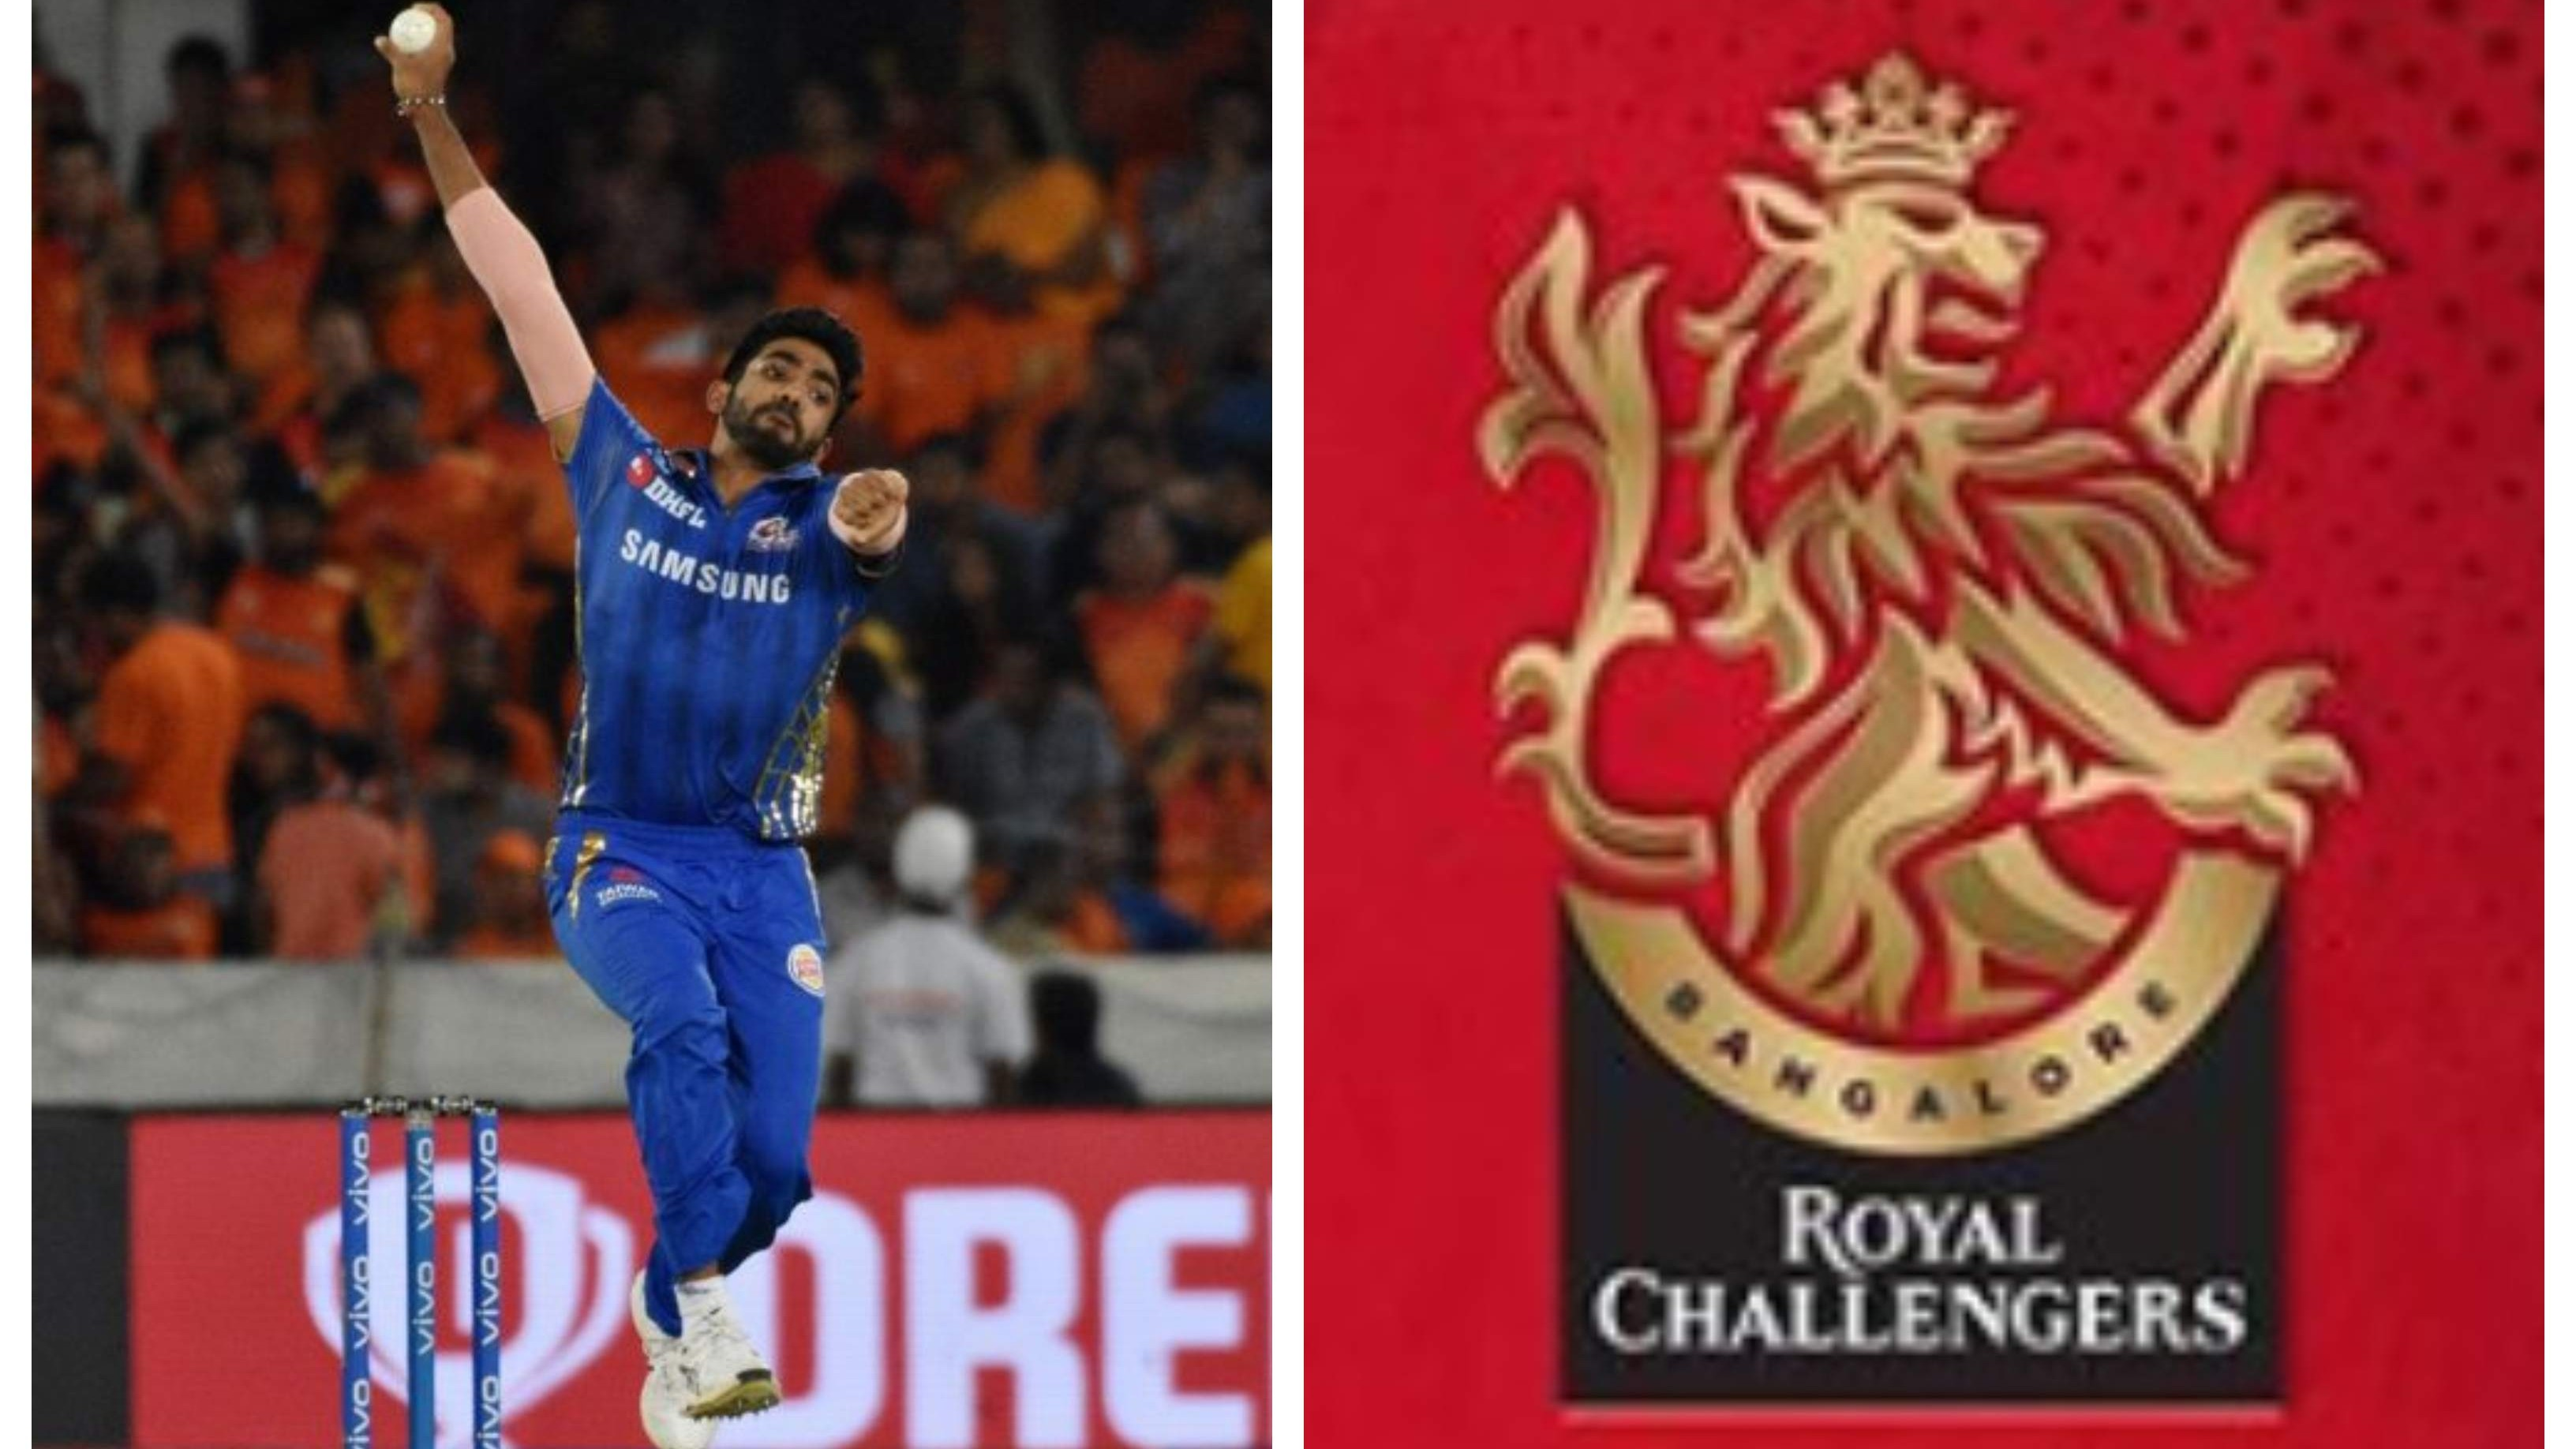 IPL 2020: Jasprit Bumrah posts a hilarious comment on RCB's redesigned logo